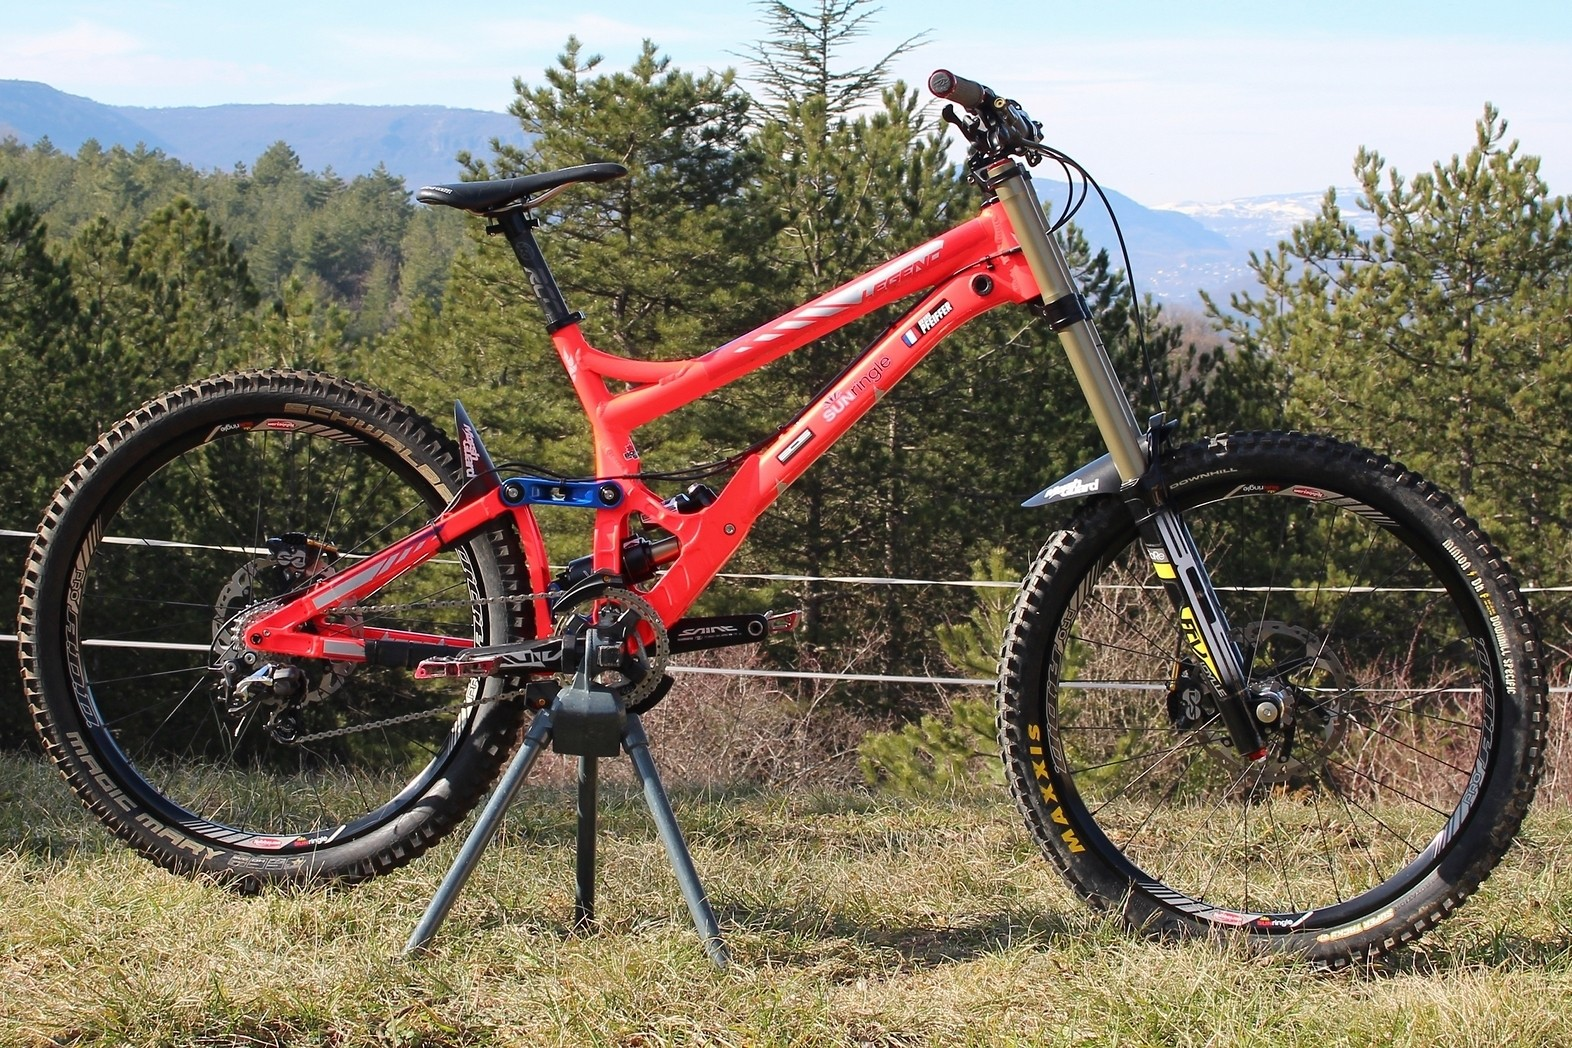 Banshee Legend XL 2015